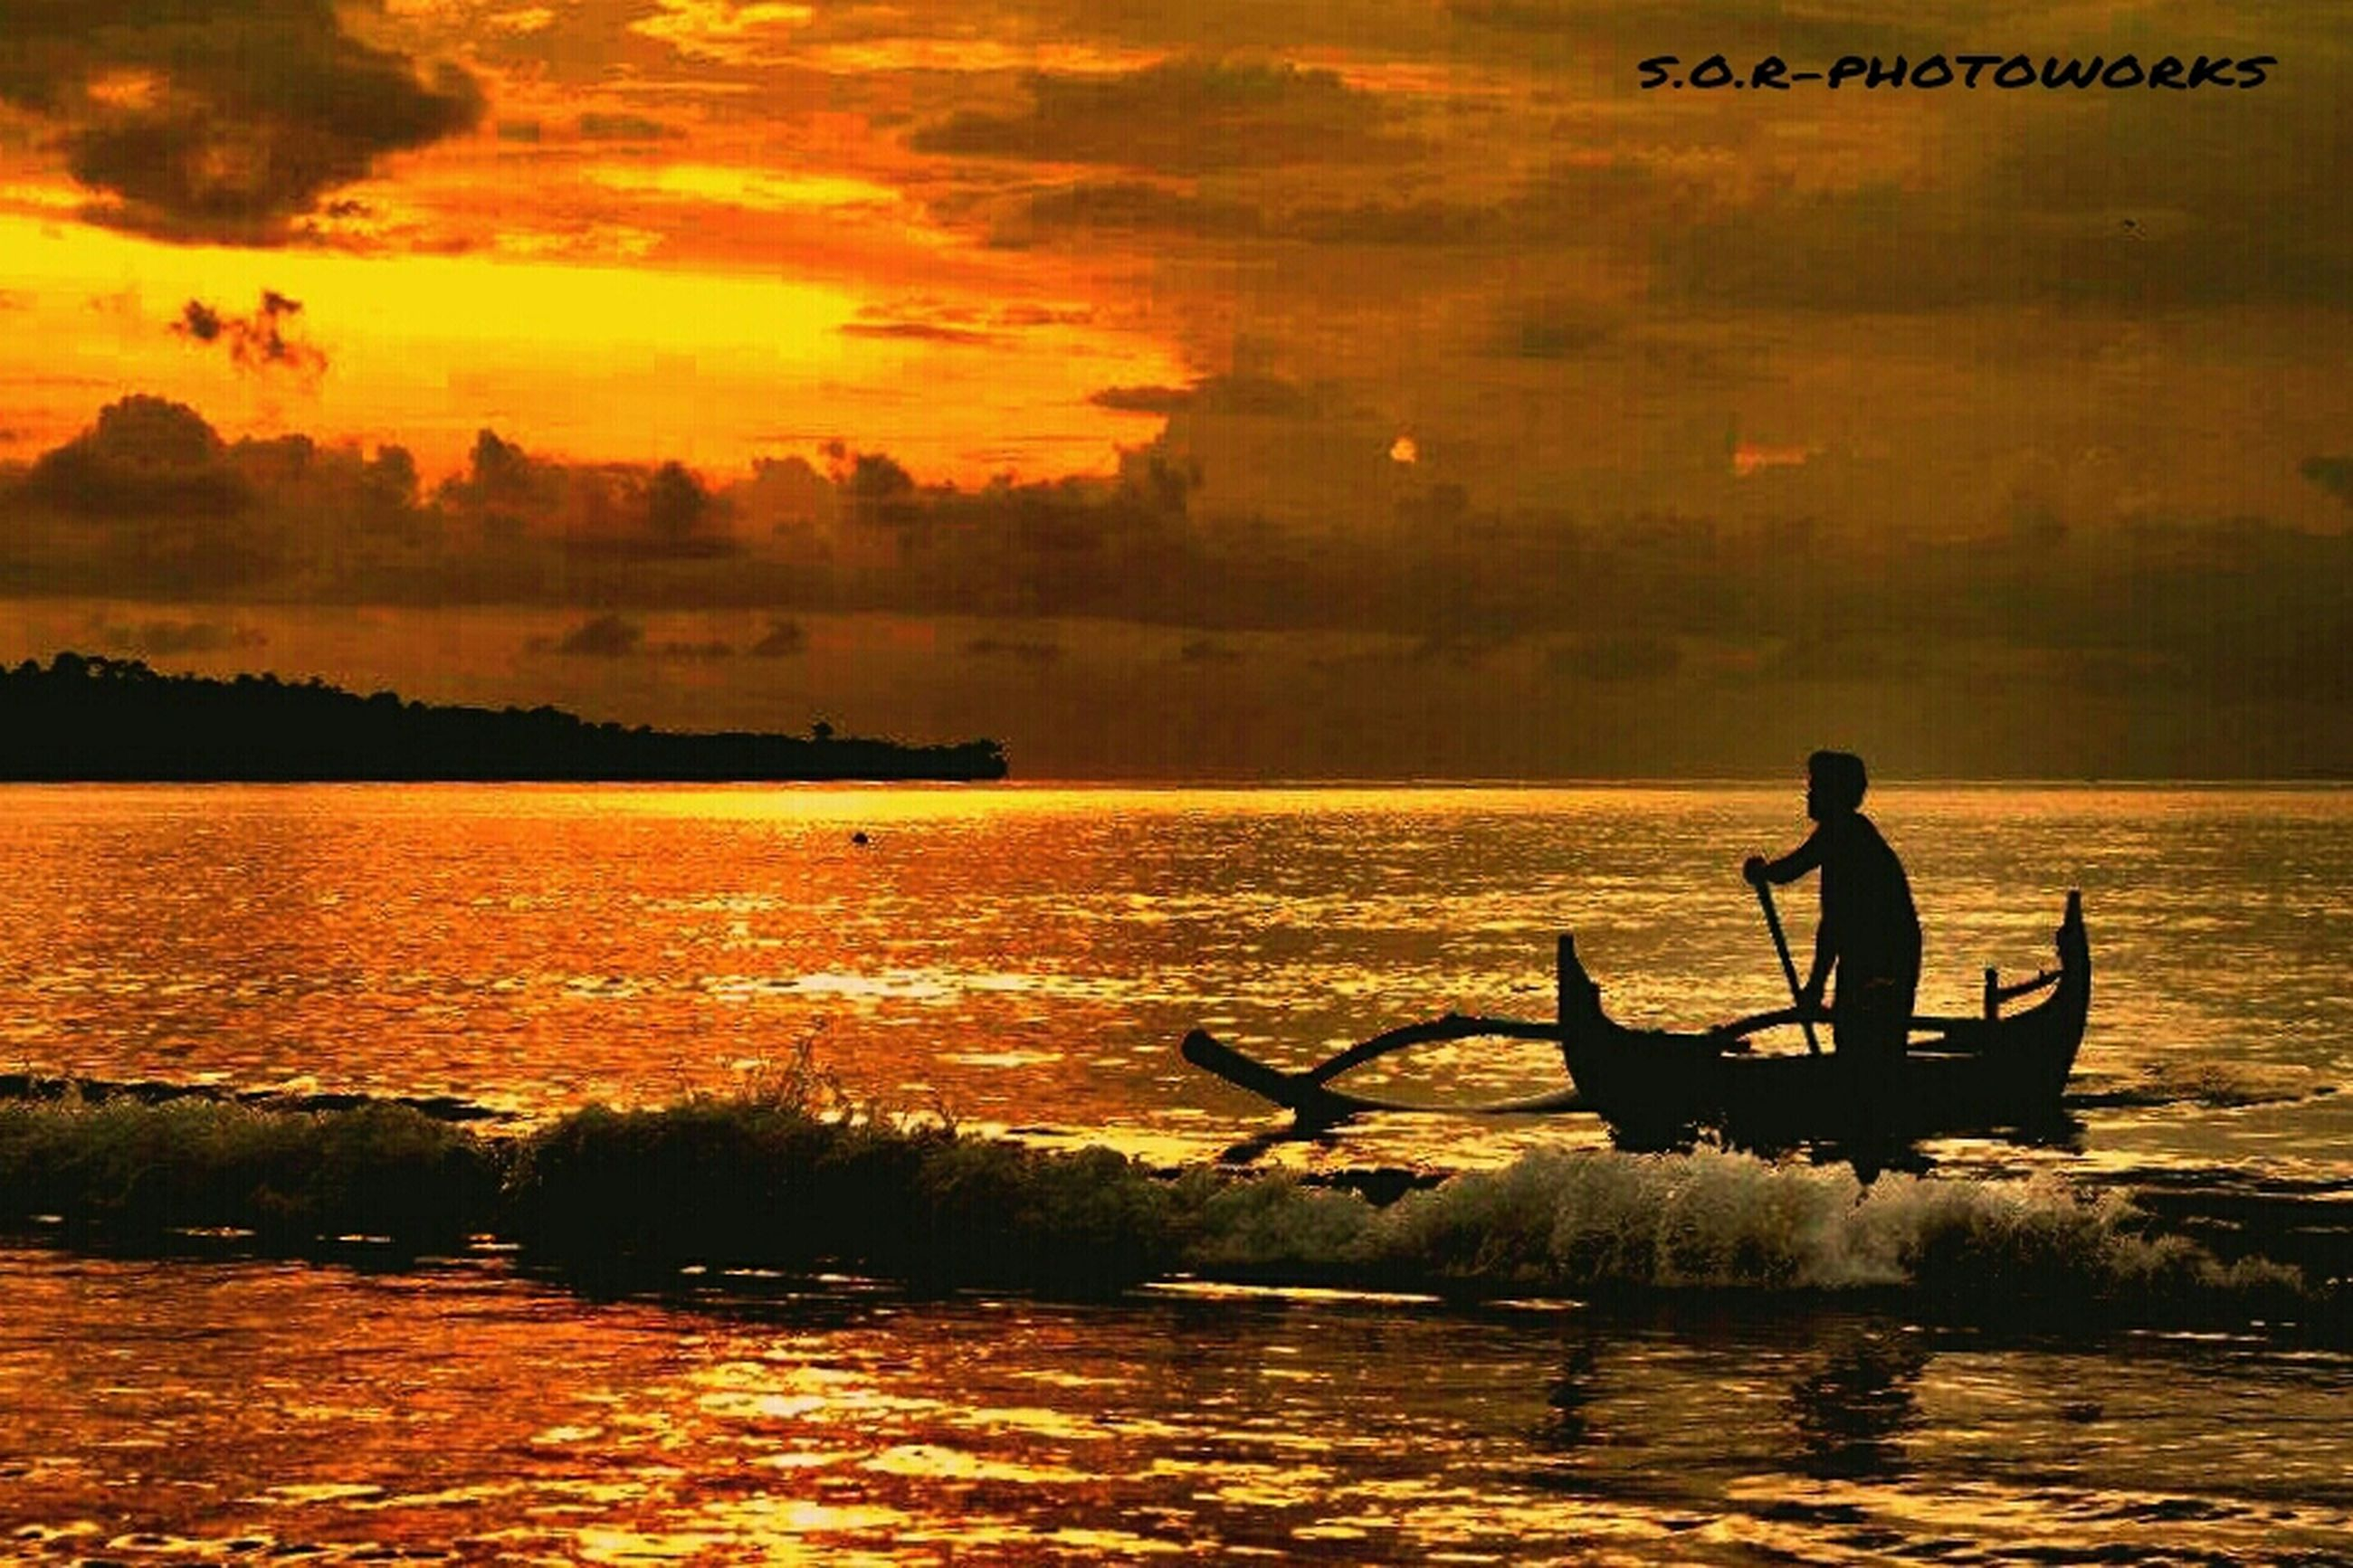 sunset, water, silhouette, transportation, nautical vessel, sky, mode of transport, boat, men, leisure activity, lifestyles, sea, beauty in nature, sitting, waterfront, scenics, orange color, tranquility